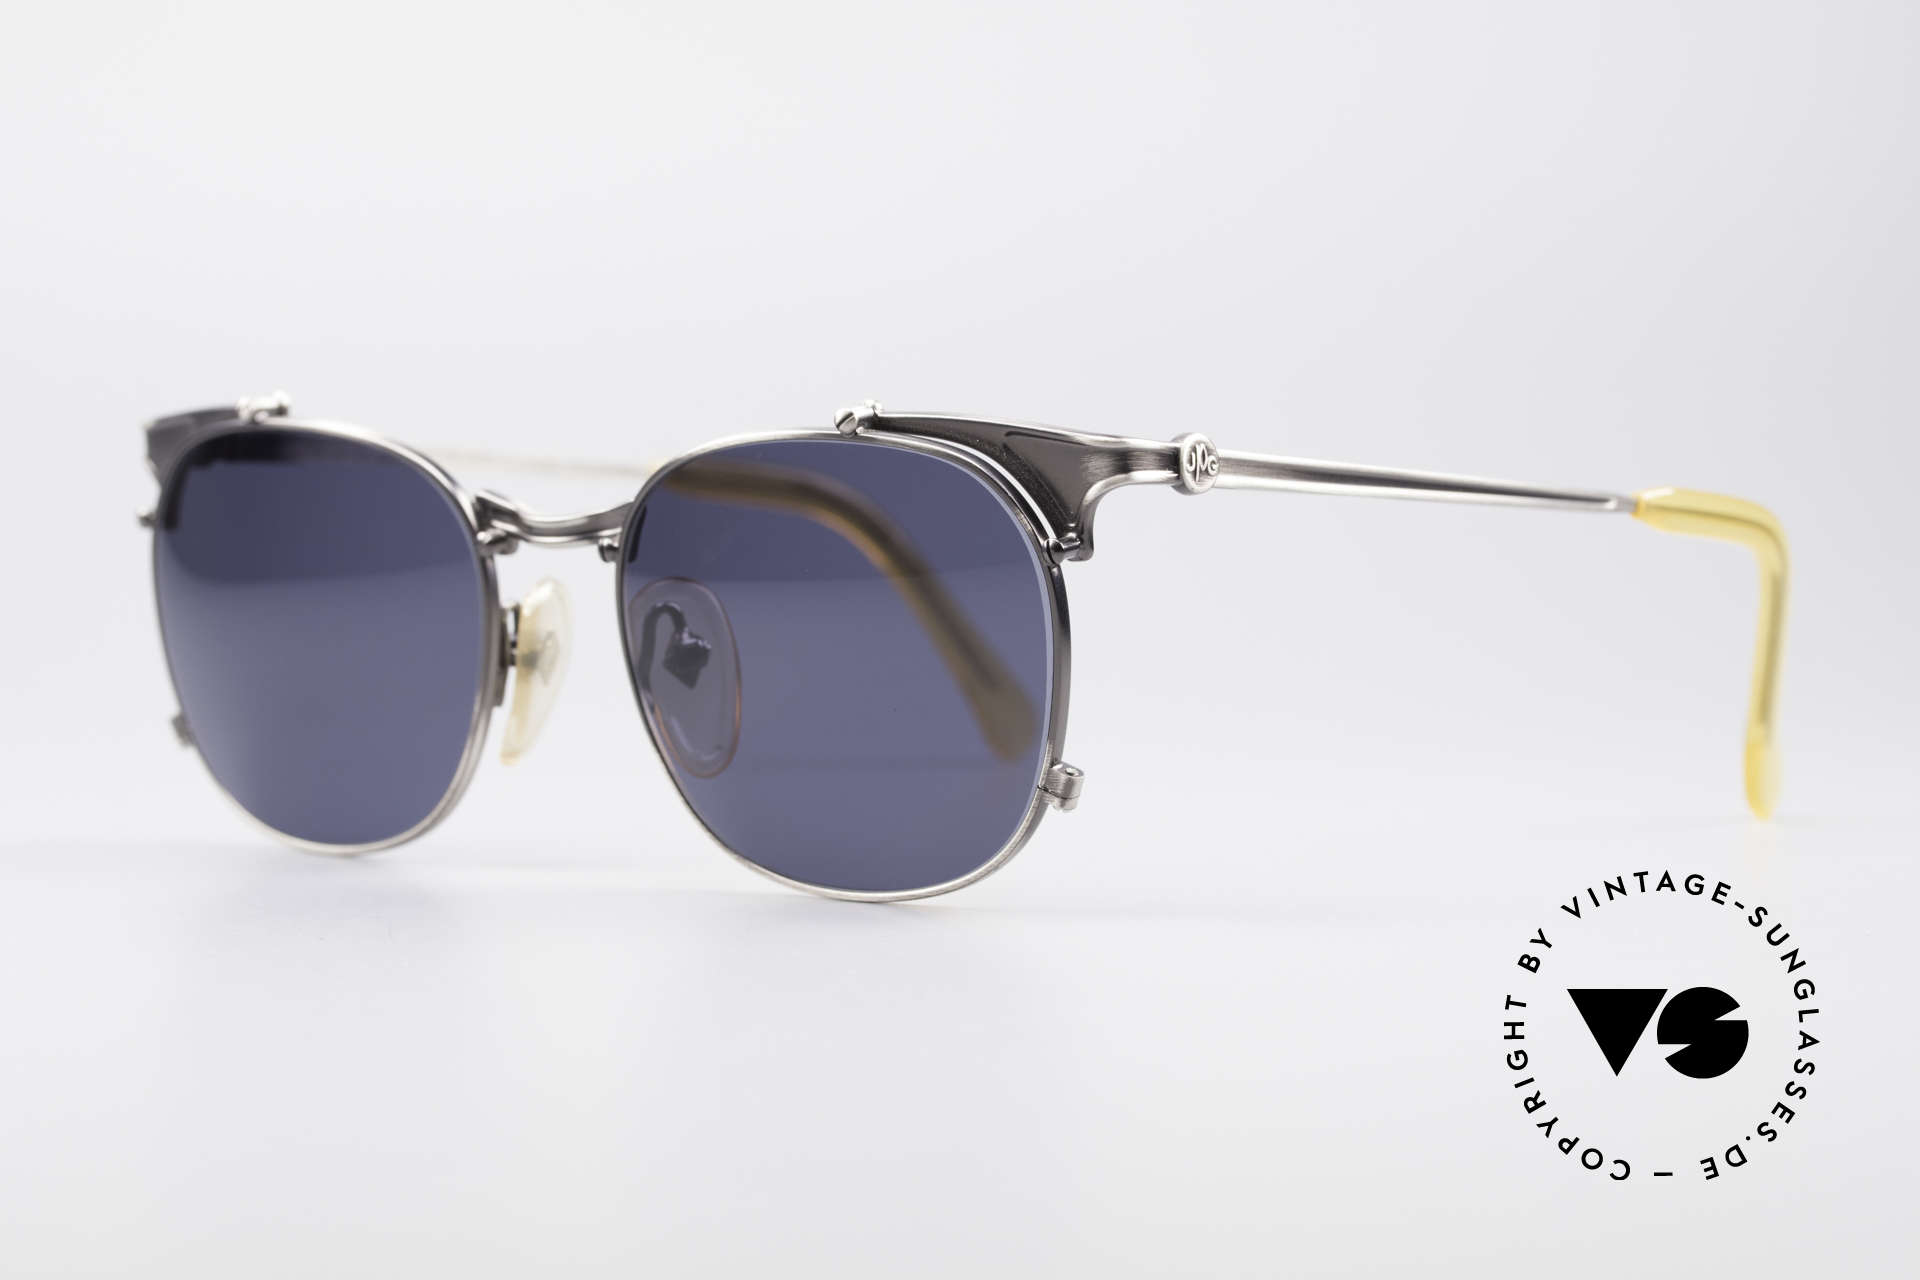 Jean Paul Gaultier 56-2175 90's Designer Sunglasses, JPG unisex model: tangible HIGH-END quality, Made for Men and Women